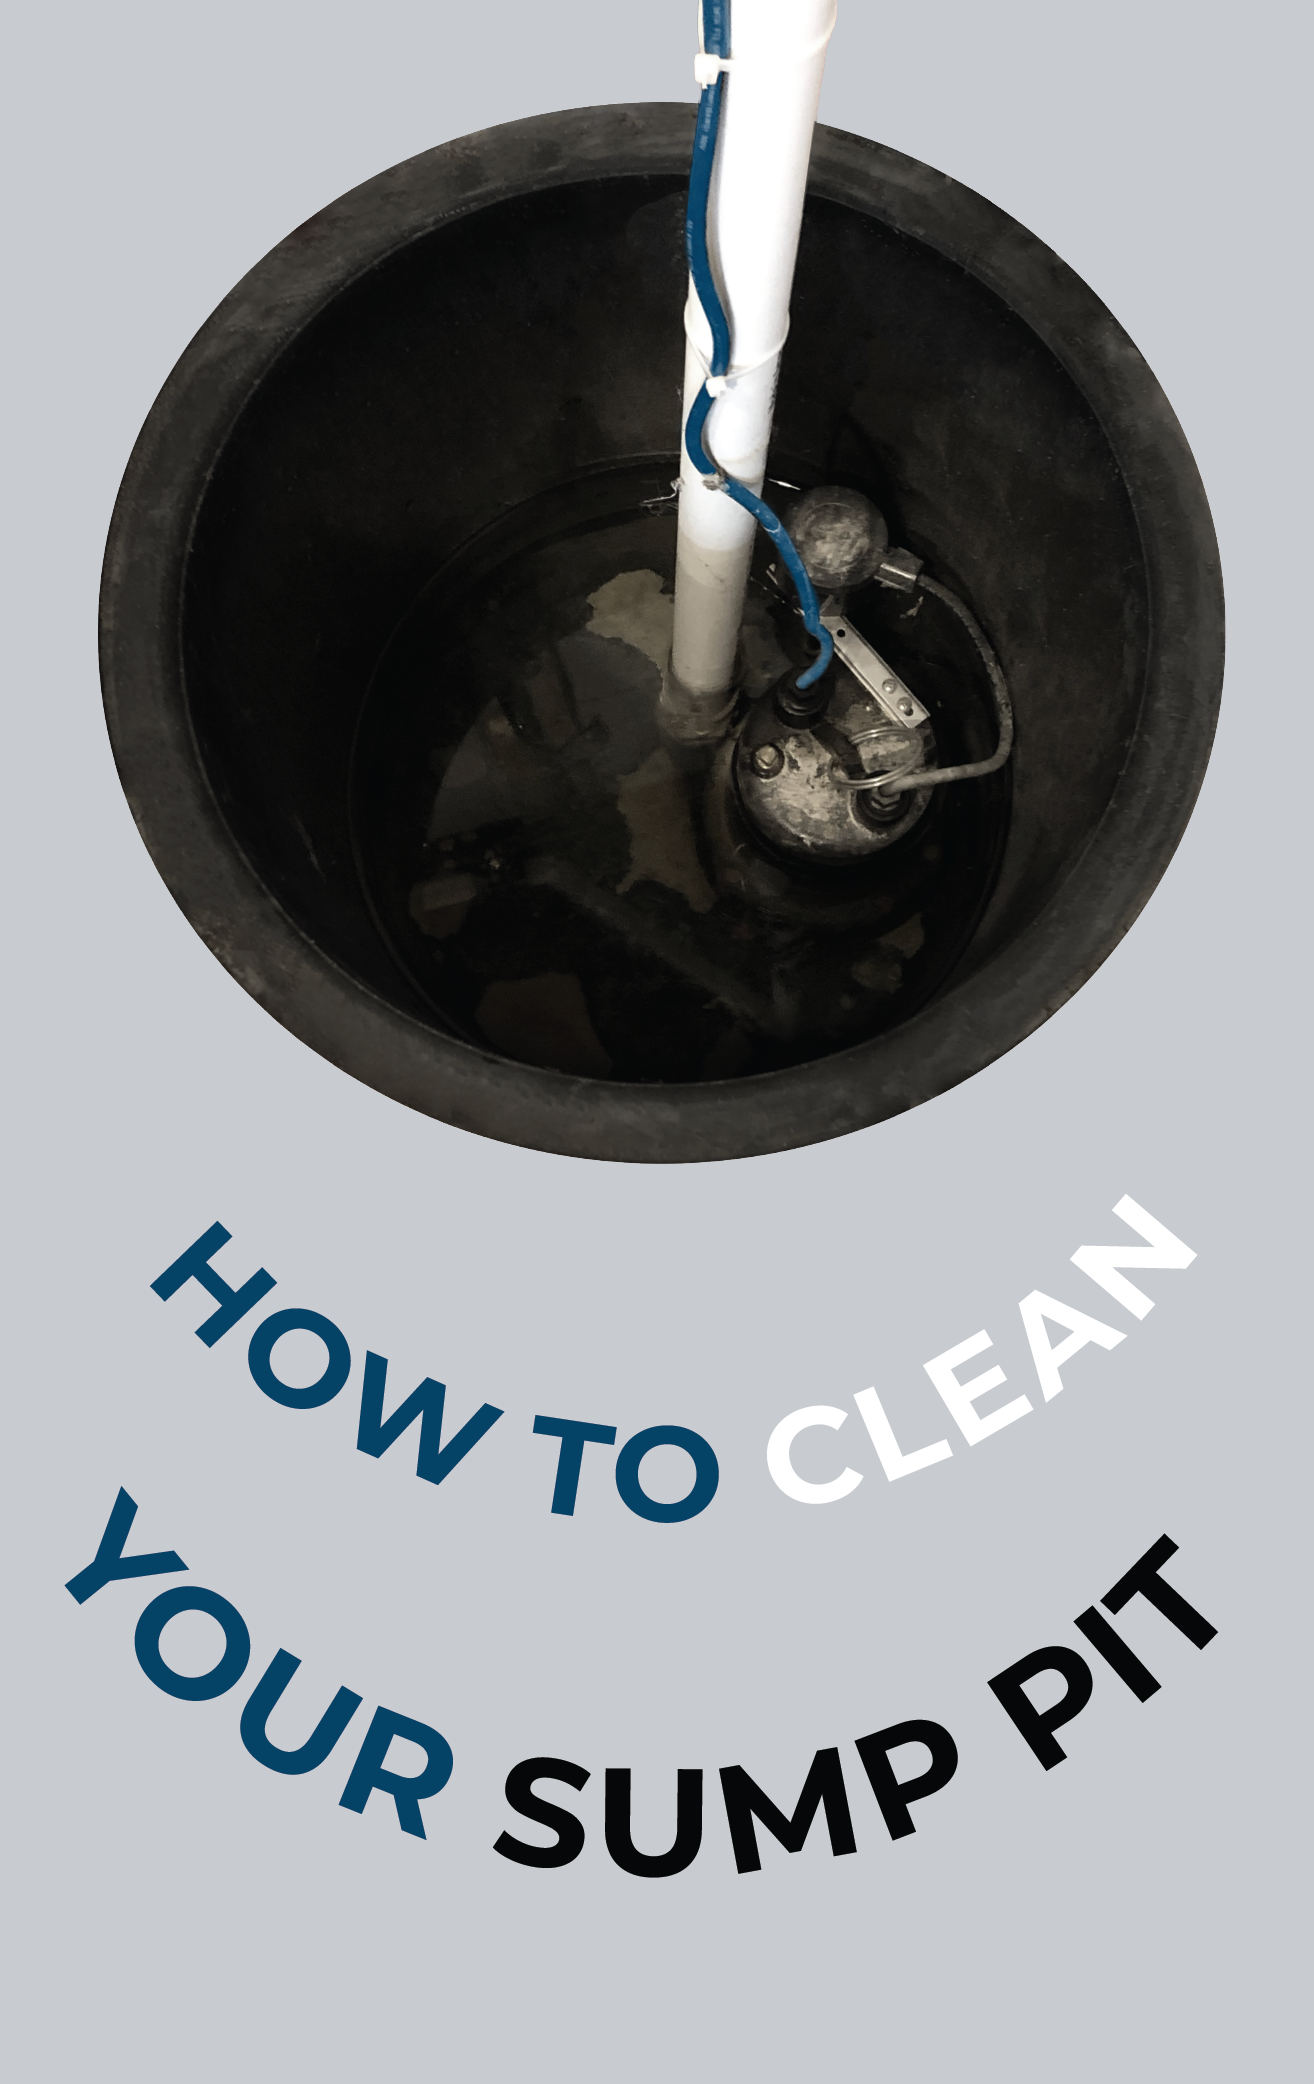 Cleaning Out A Sump Pit Is Something That Most Homeowners Do Not Think To Do However Not Cleaning Your Sump Pit Can Lead To Pump Issu Sump Pit Sump Cleaning